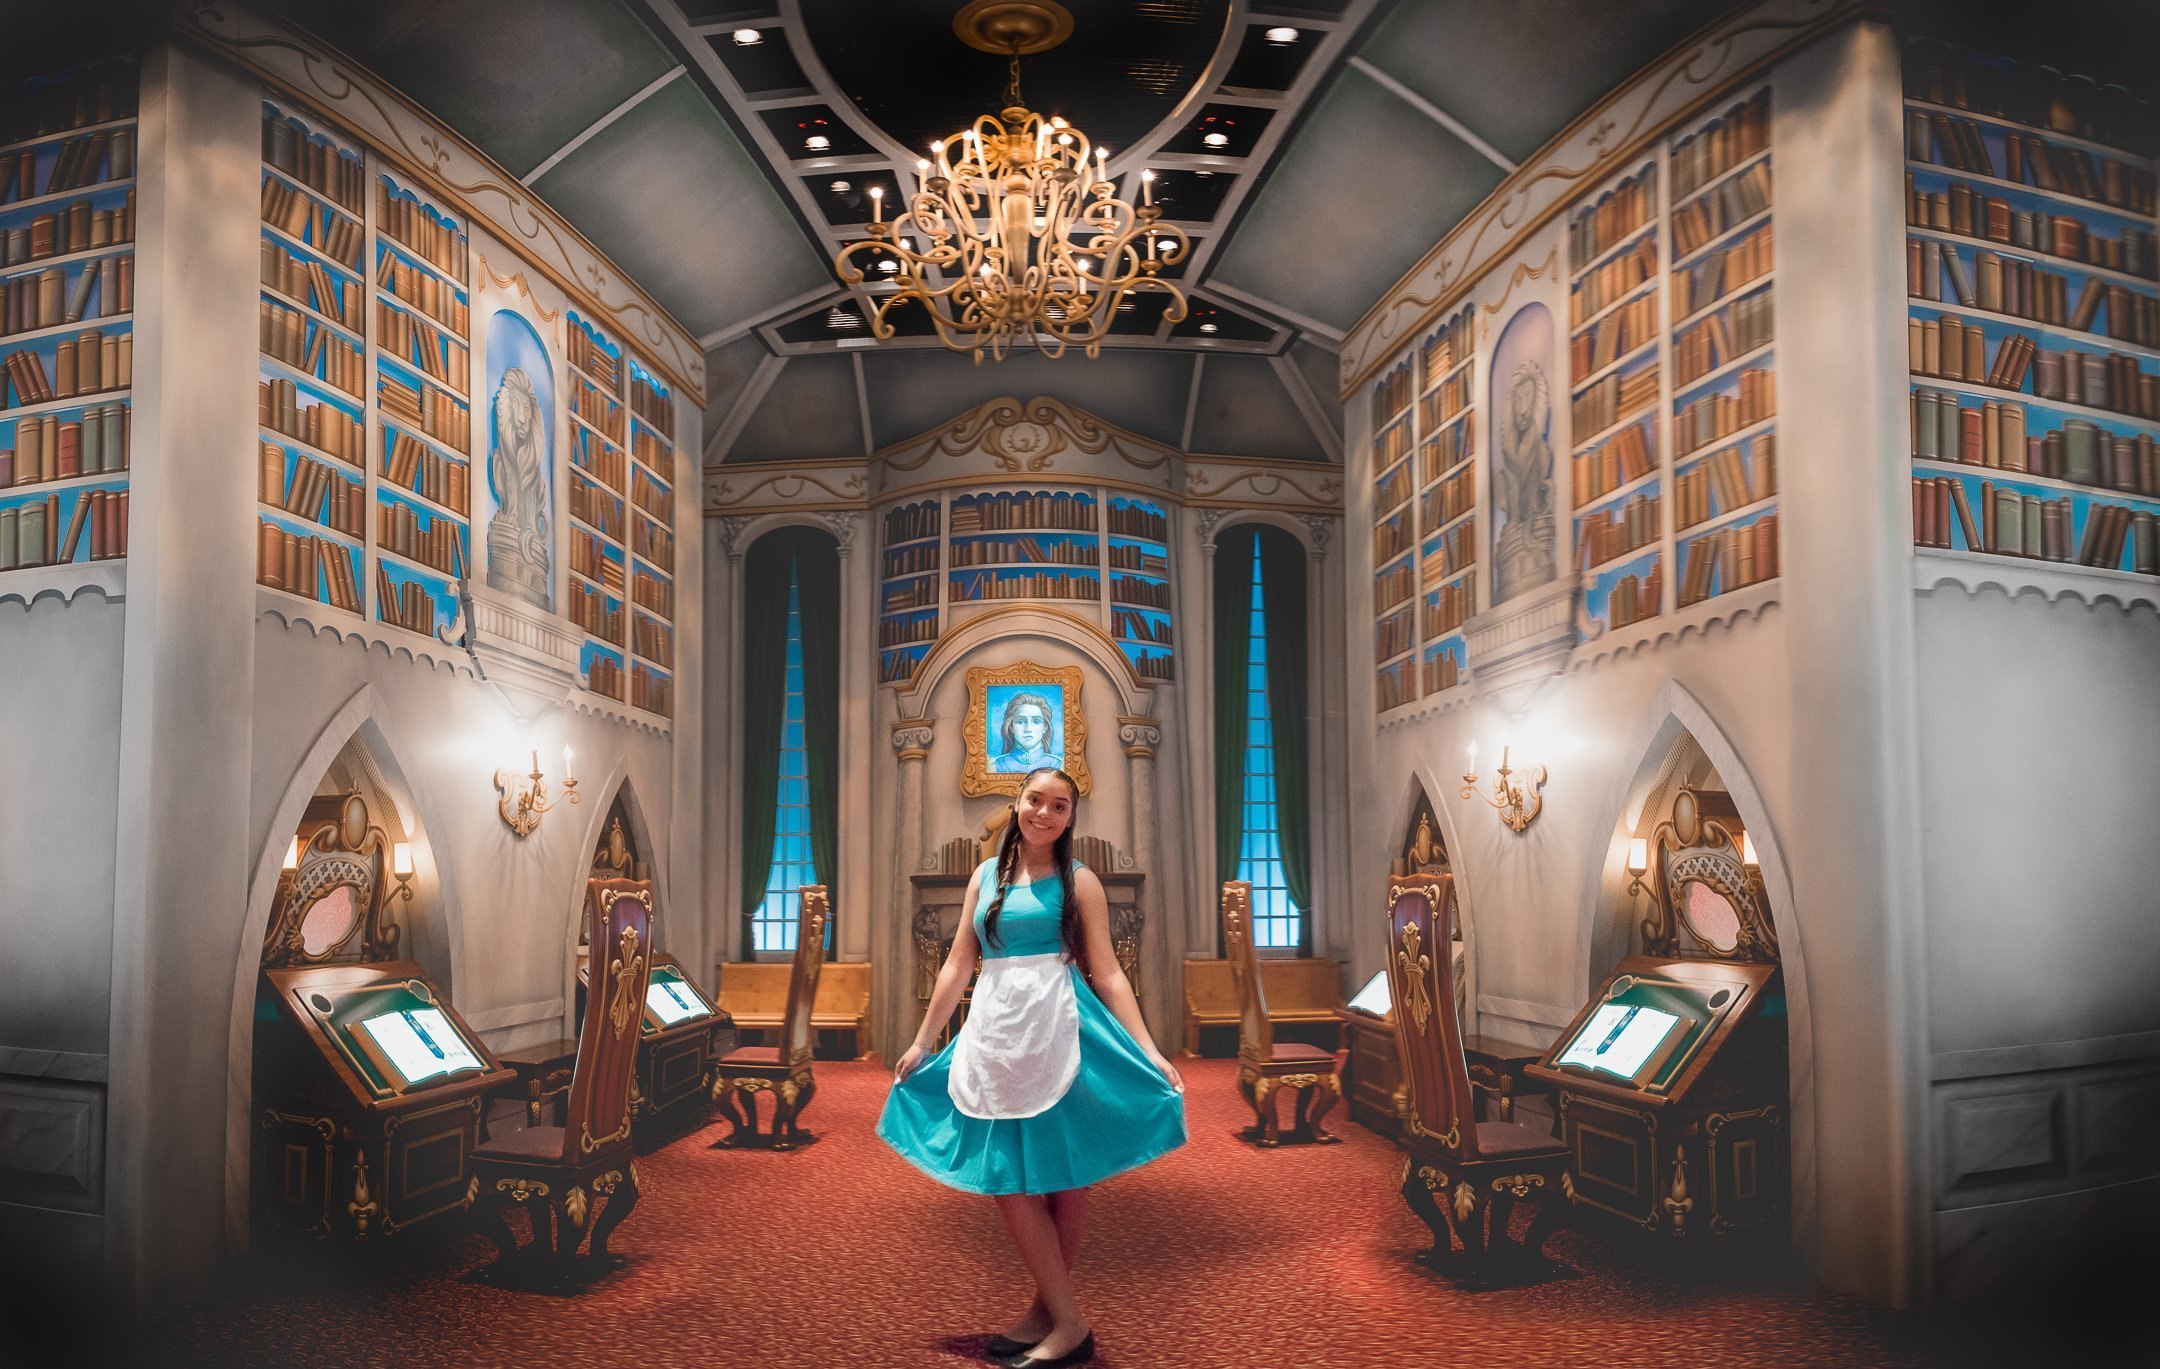 Disneyland Quinceanera photo session - In beast's library in Disney's California Adventure Park in Disneyland, CA